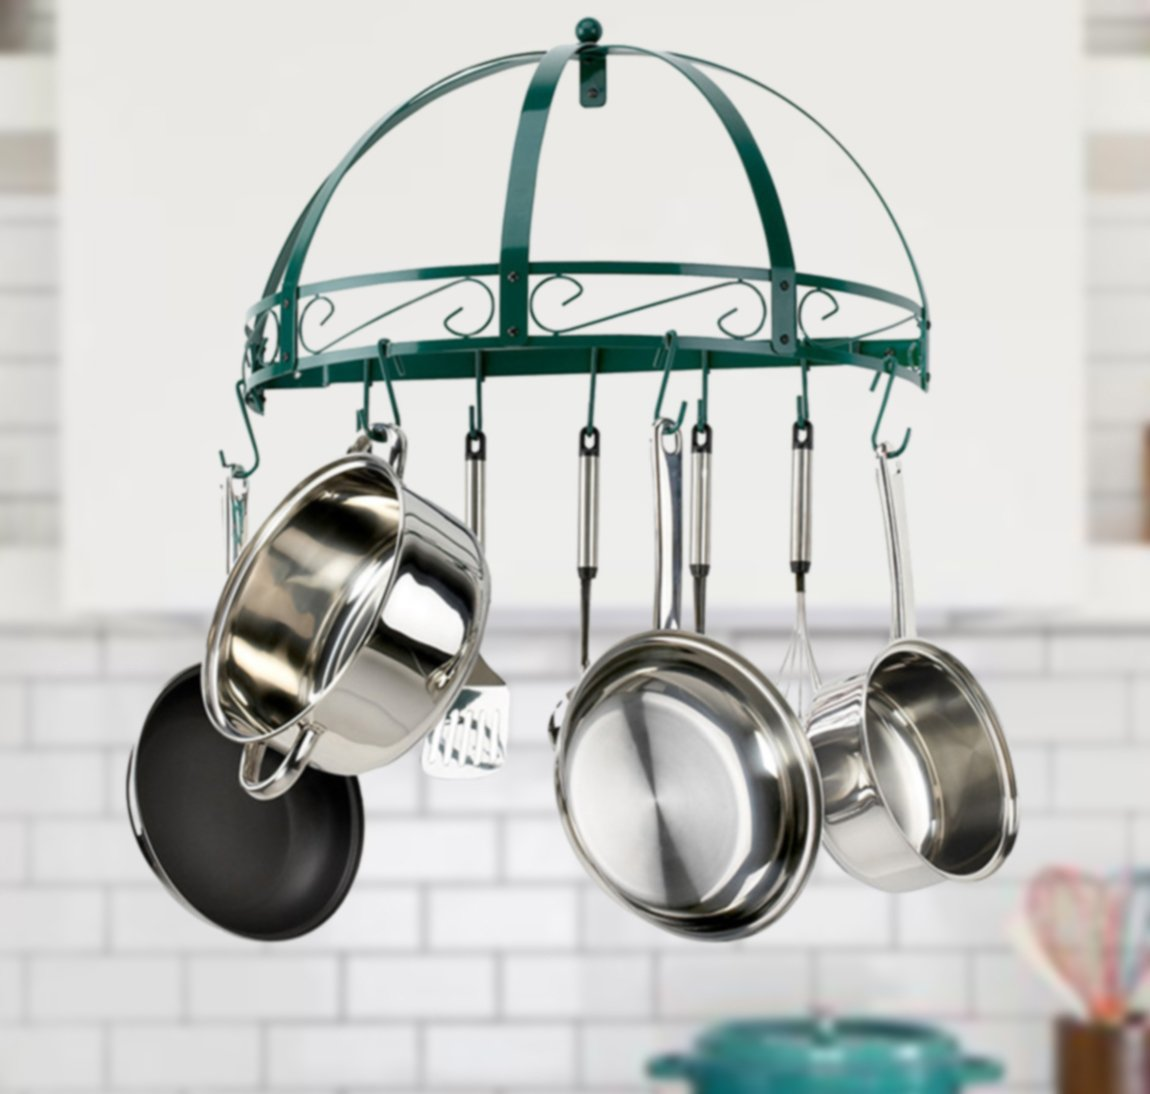 Kinetic 29142 Semi-Circle Wrought-Iron Wall-Mount Pot Rack, Green Enamel